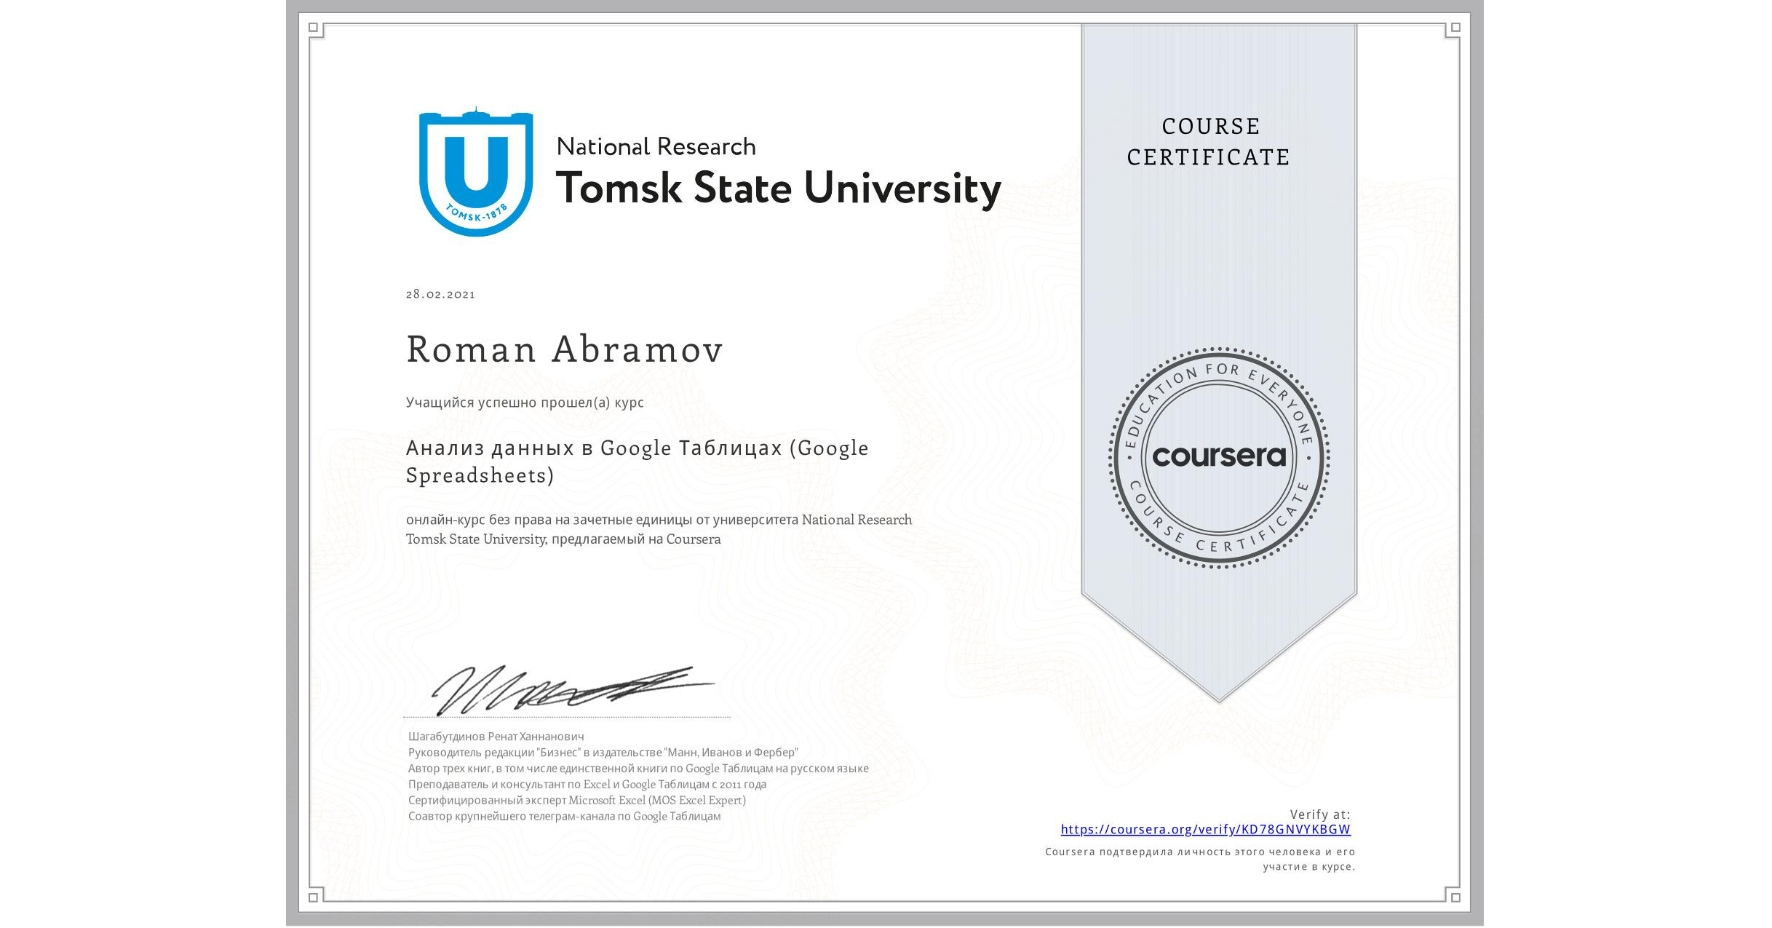 View certificate for Roman Abramov, Анализ данных в Google Таблицах (Google Spreadsheets), an online non-credit course authorized by National Research Tomsk State University and offered through Coursera